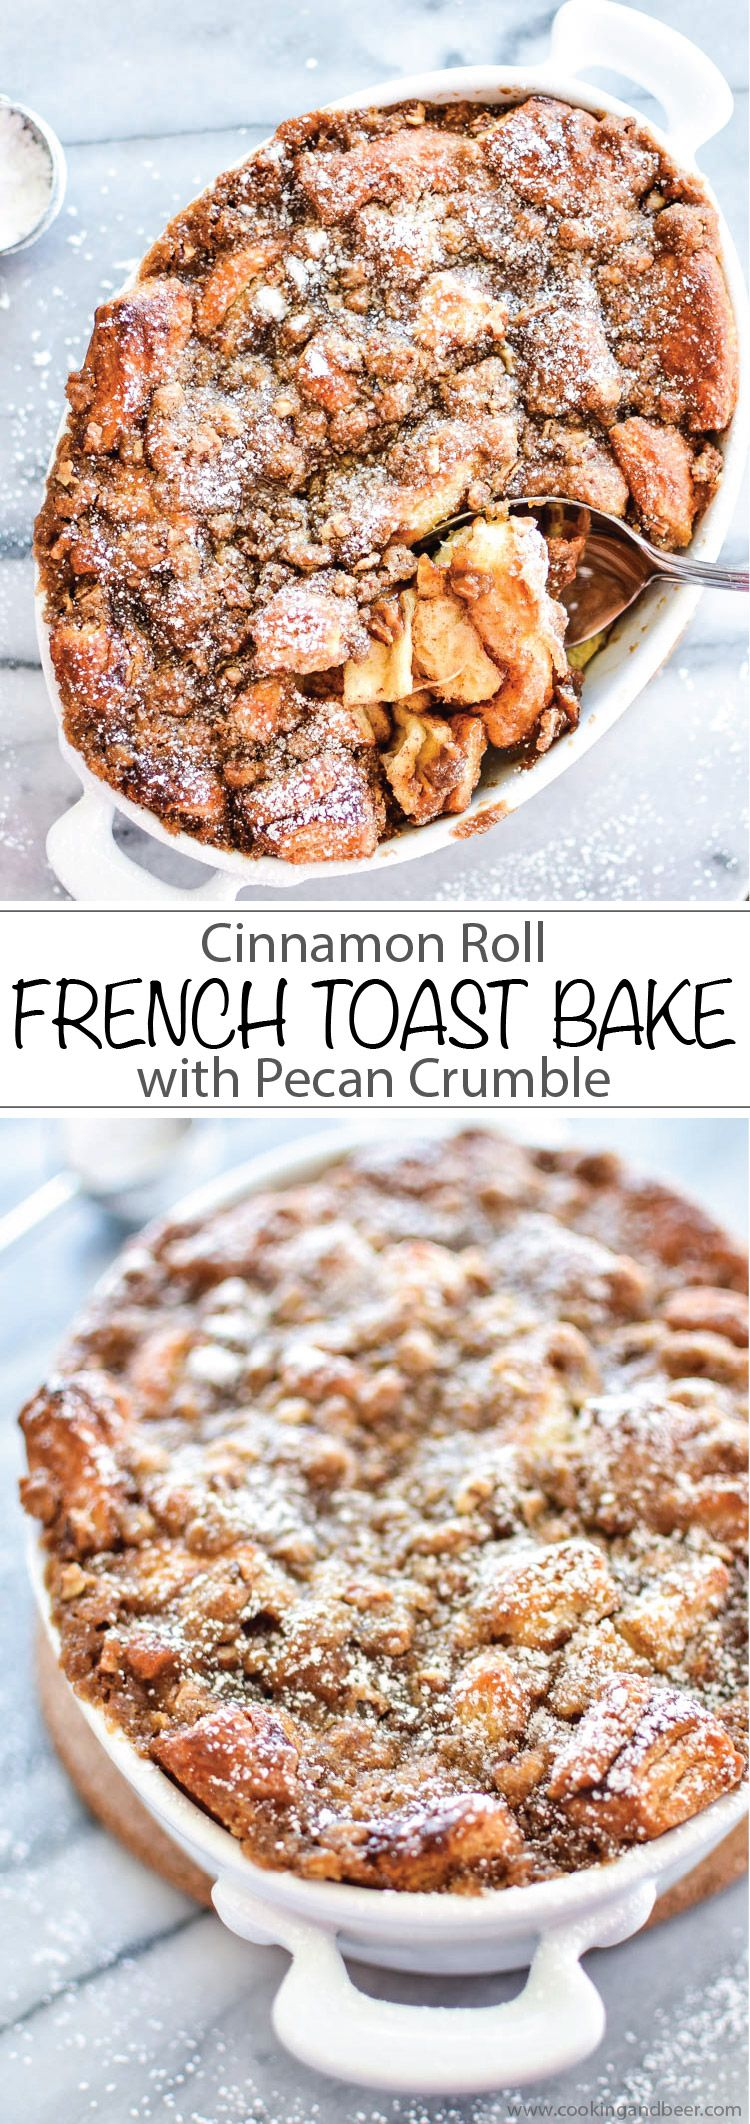 Cinnamon Roll French Toast Bake with Pecan Crumble